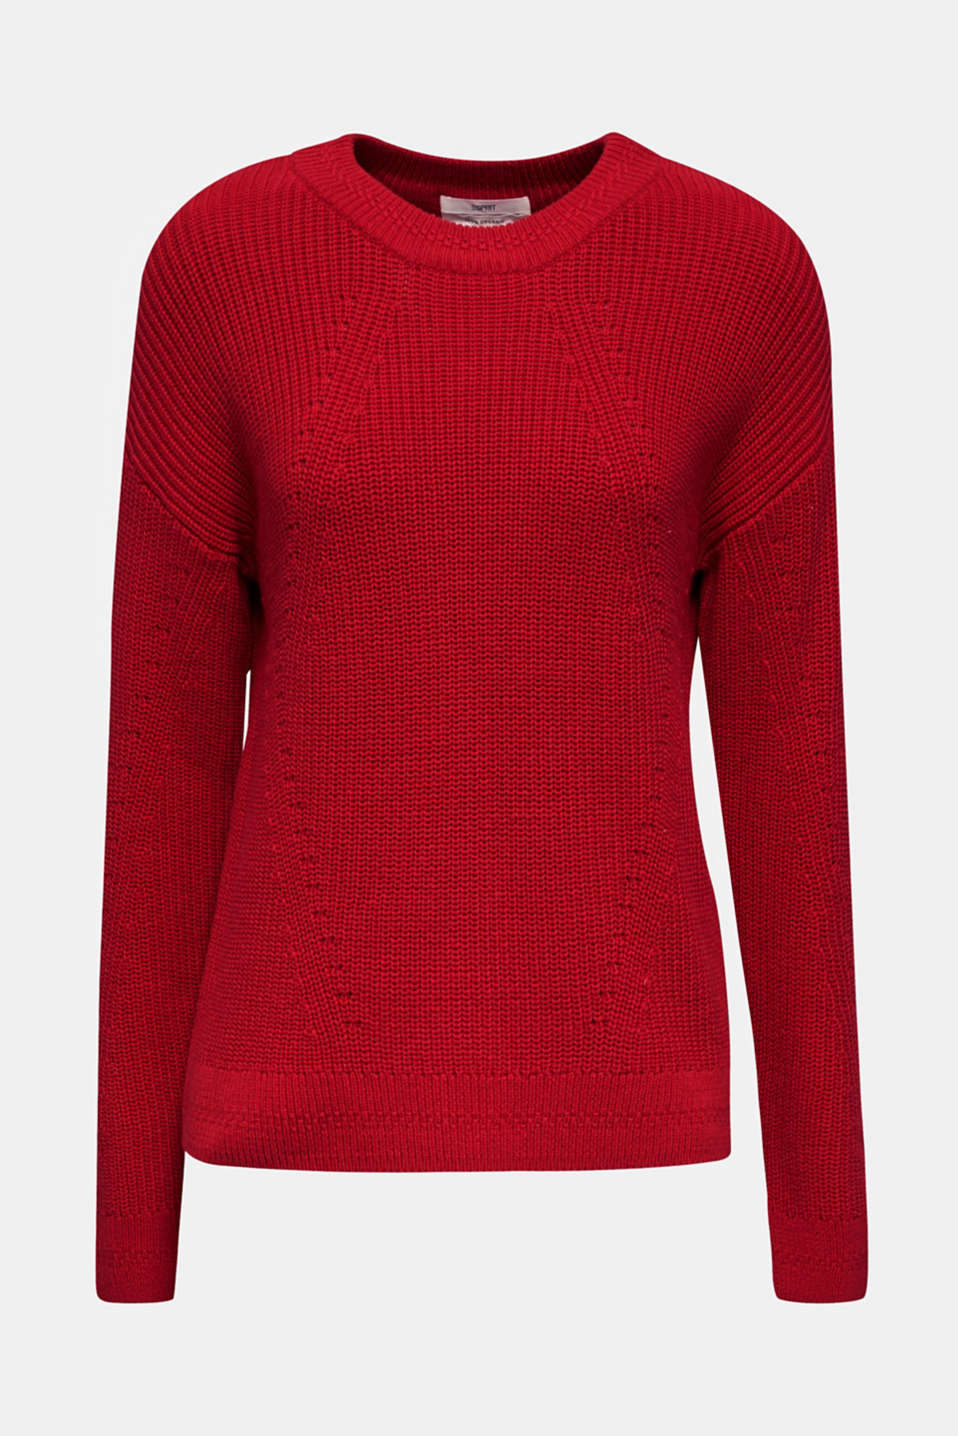 Jumper with textured details, 100% cotton, DARK RED, detail image number 5